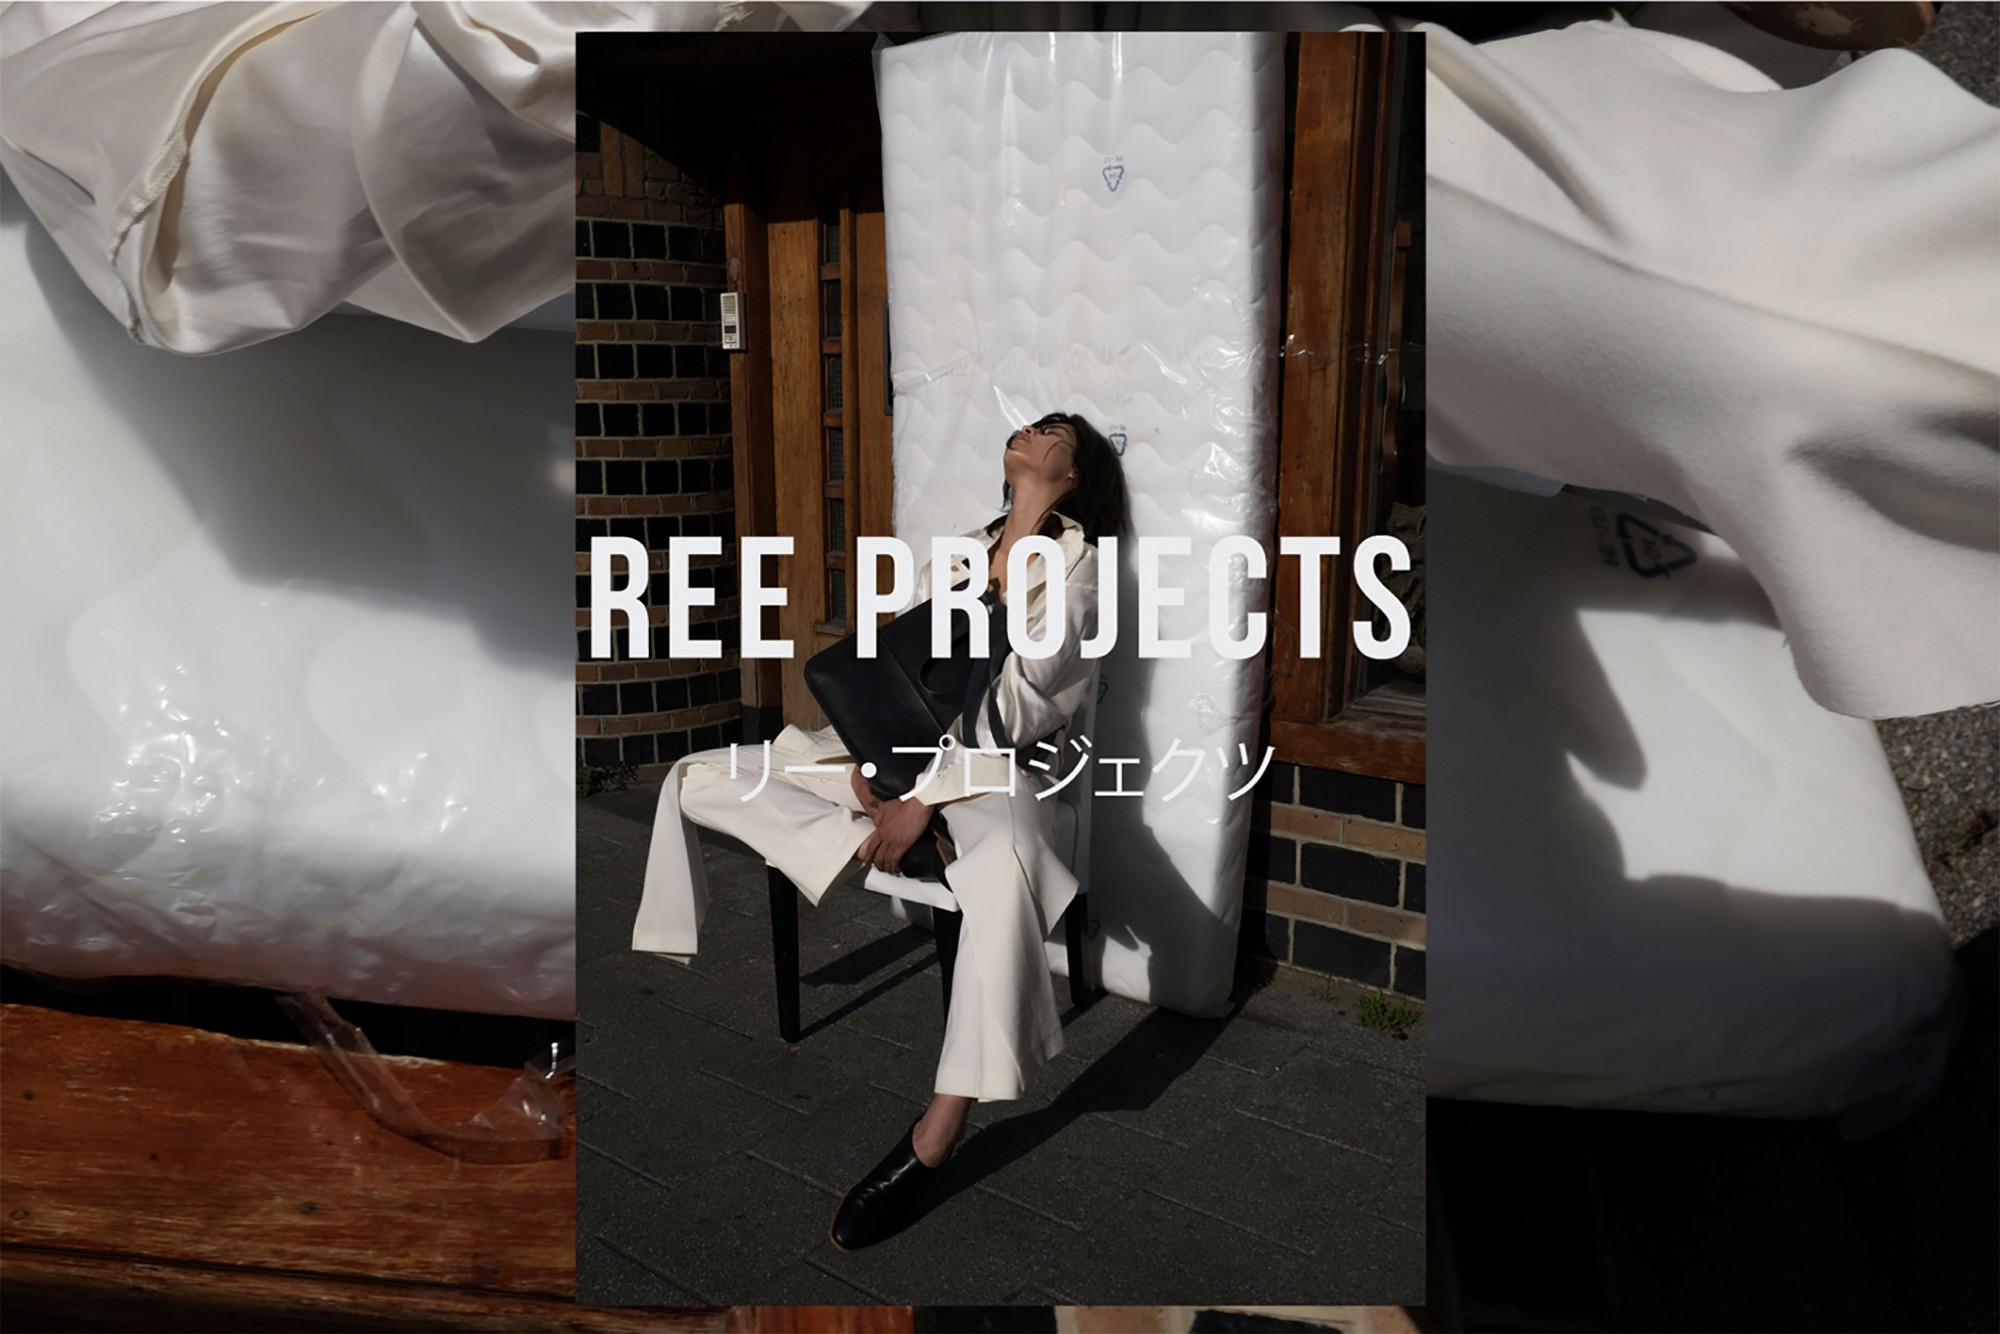 Ree Projects, Violette Esmeralda